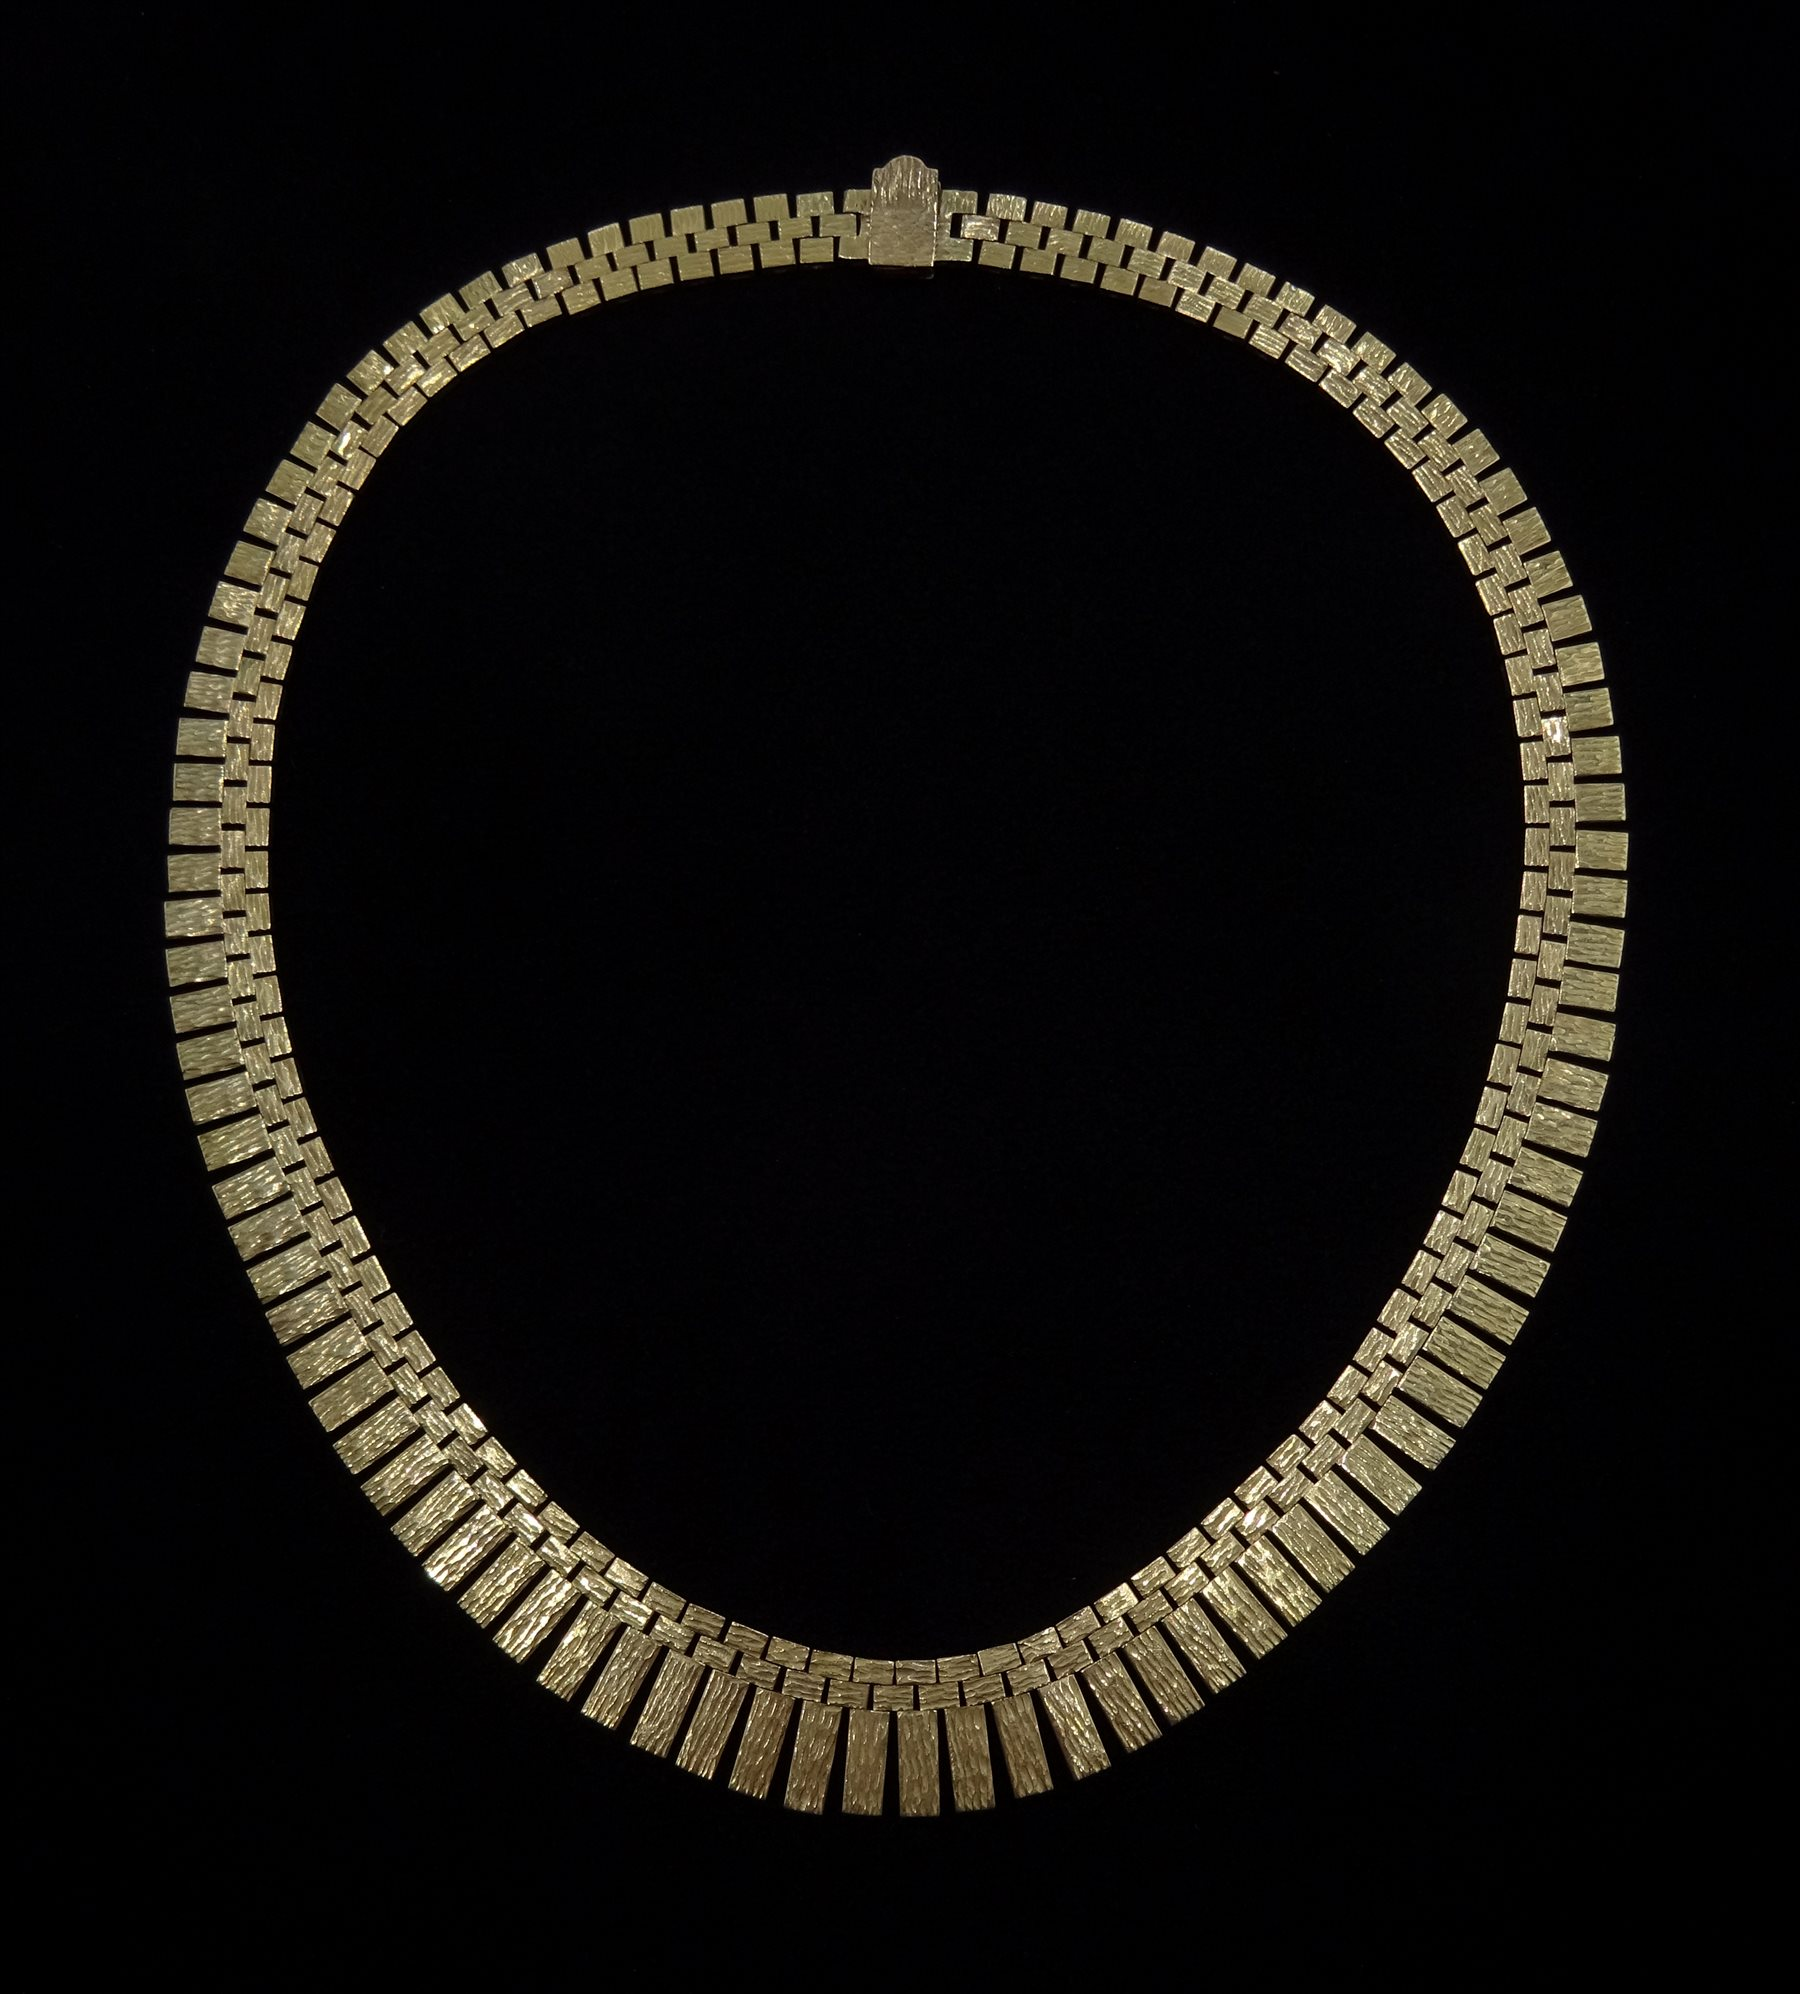 9ct gold fringe necklace, stamped 9 375, approx 66.8gm, retailed by Rusbridge Scarborough boxed